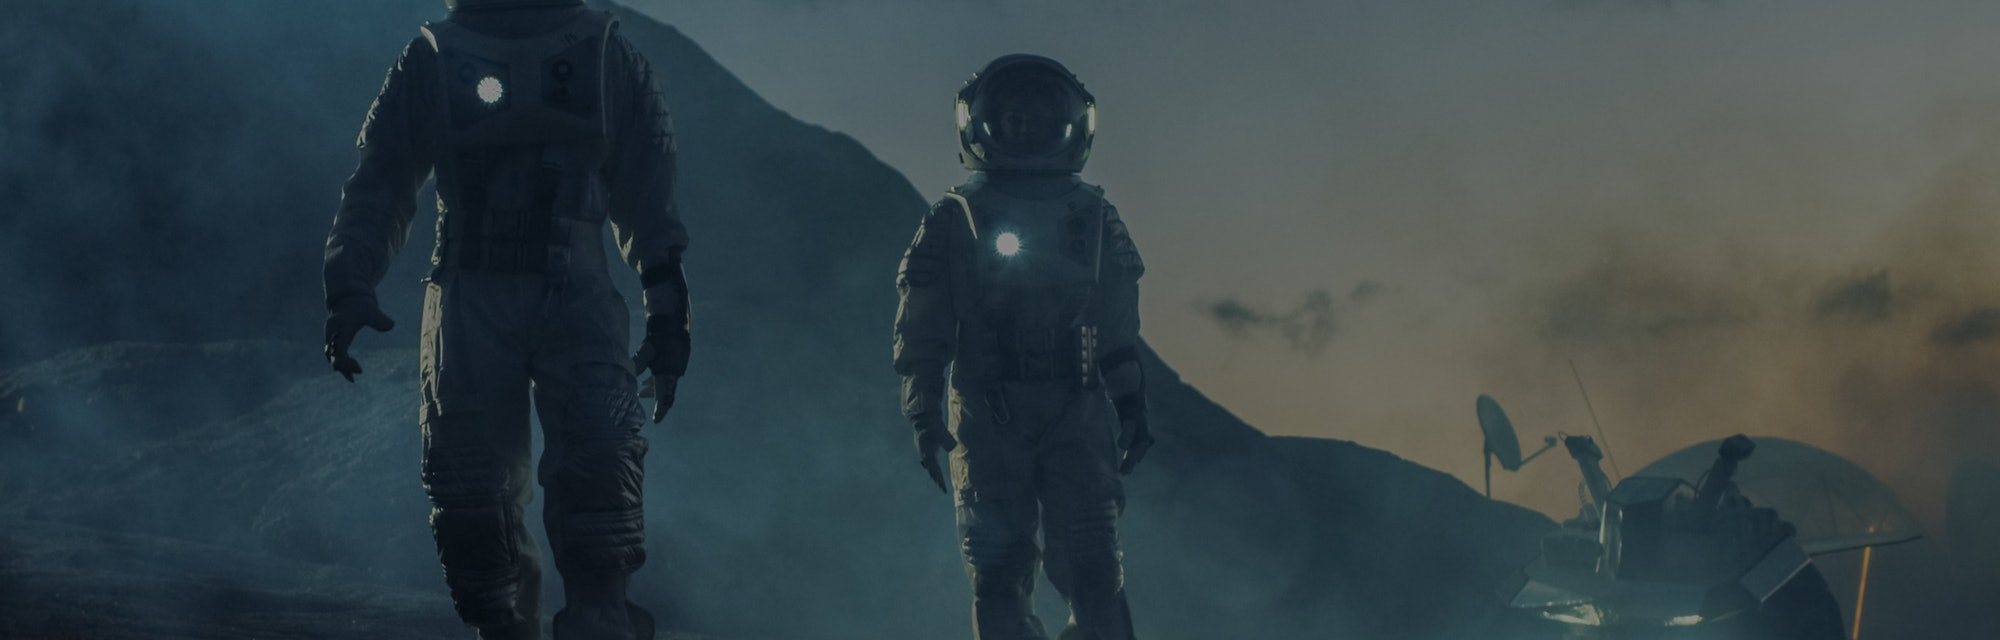 Two Astronauts in Space Suits Confidently Walking on Alien Planet, Exploration of the the Planet's S...